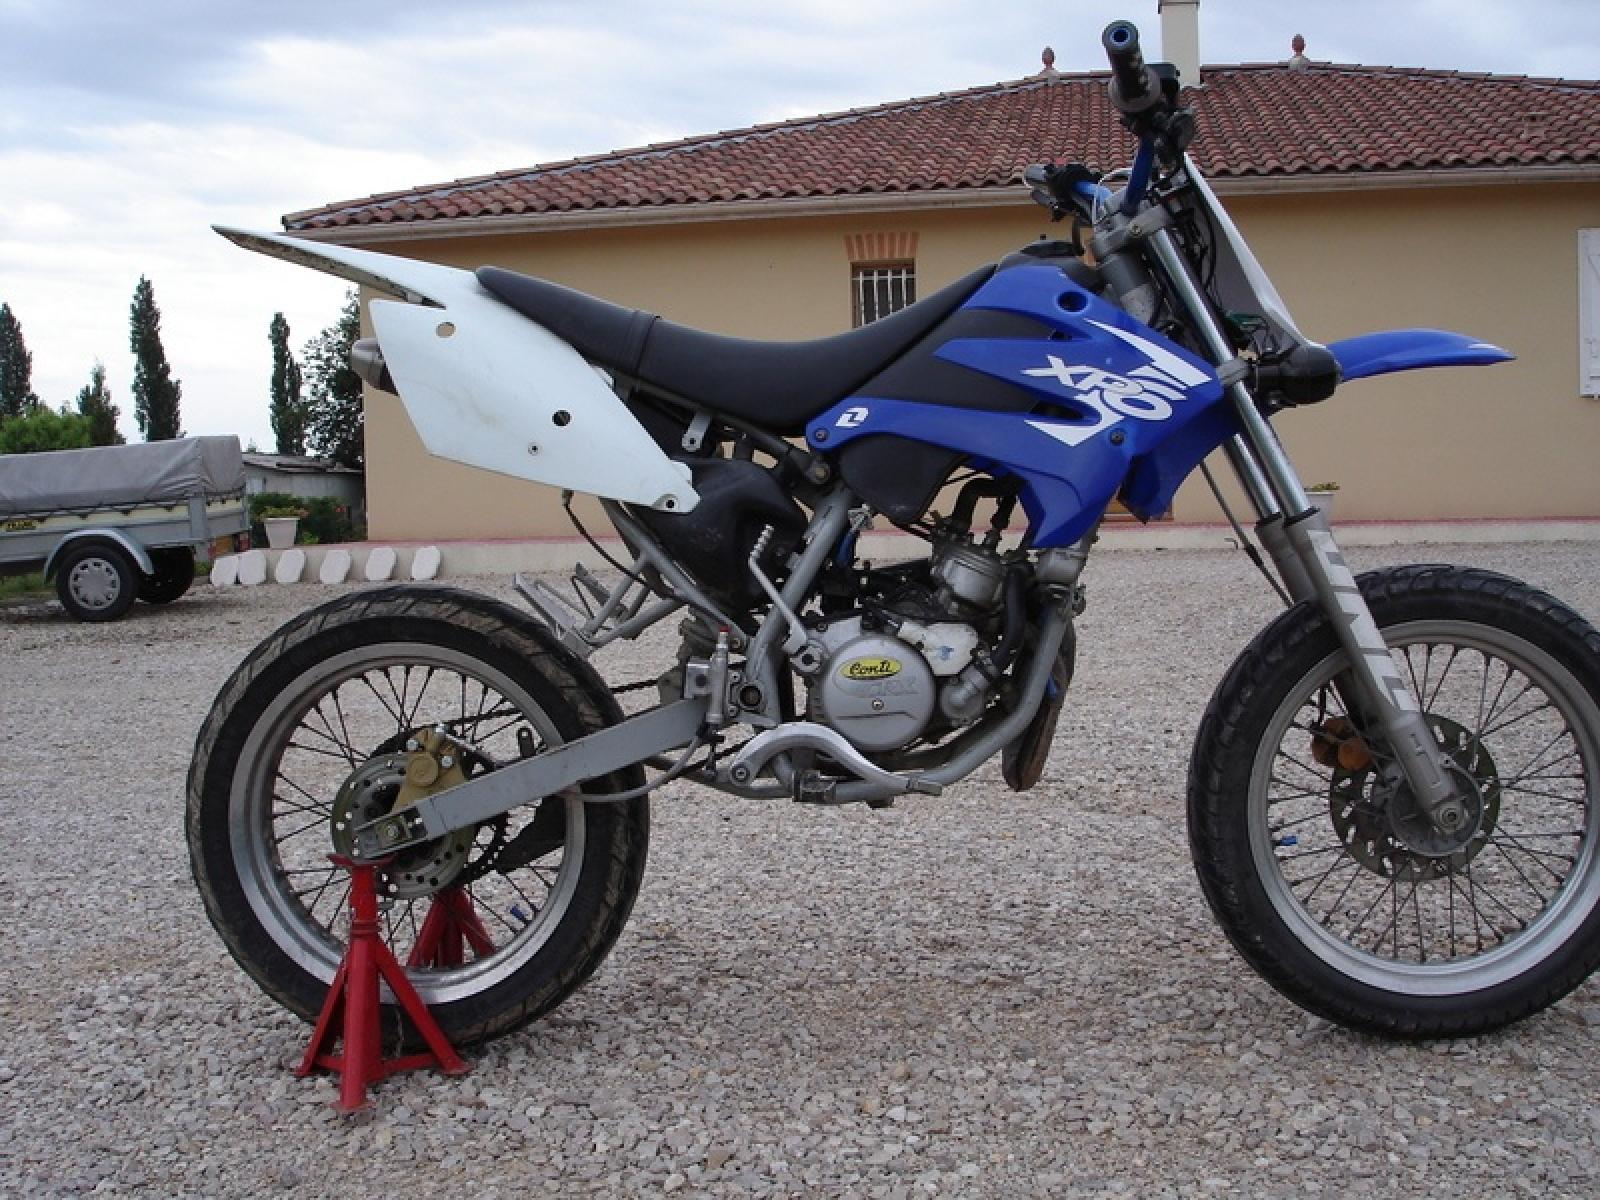 Peugeot XP6 50 Supermotard 2002 images #119469